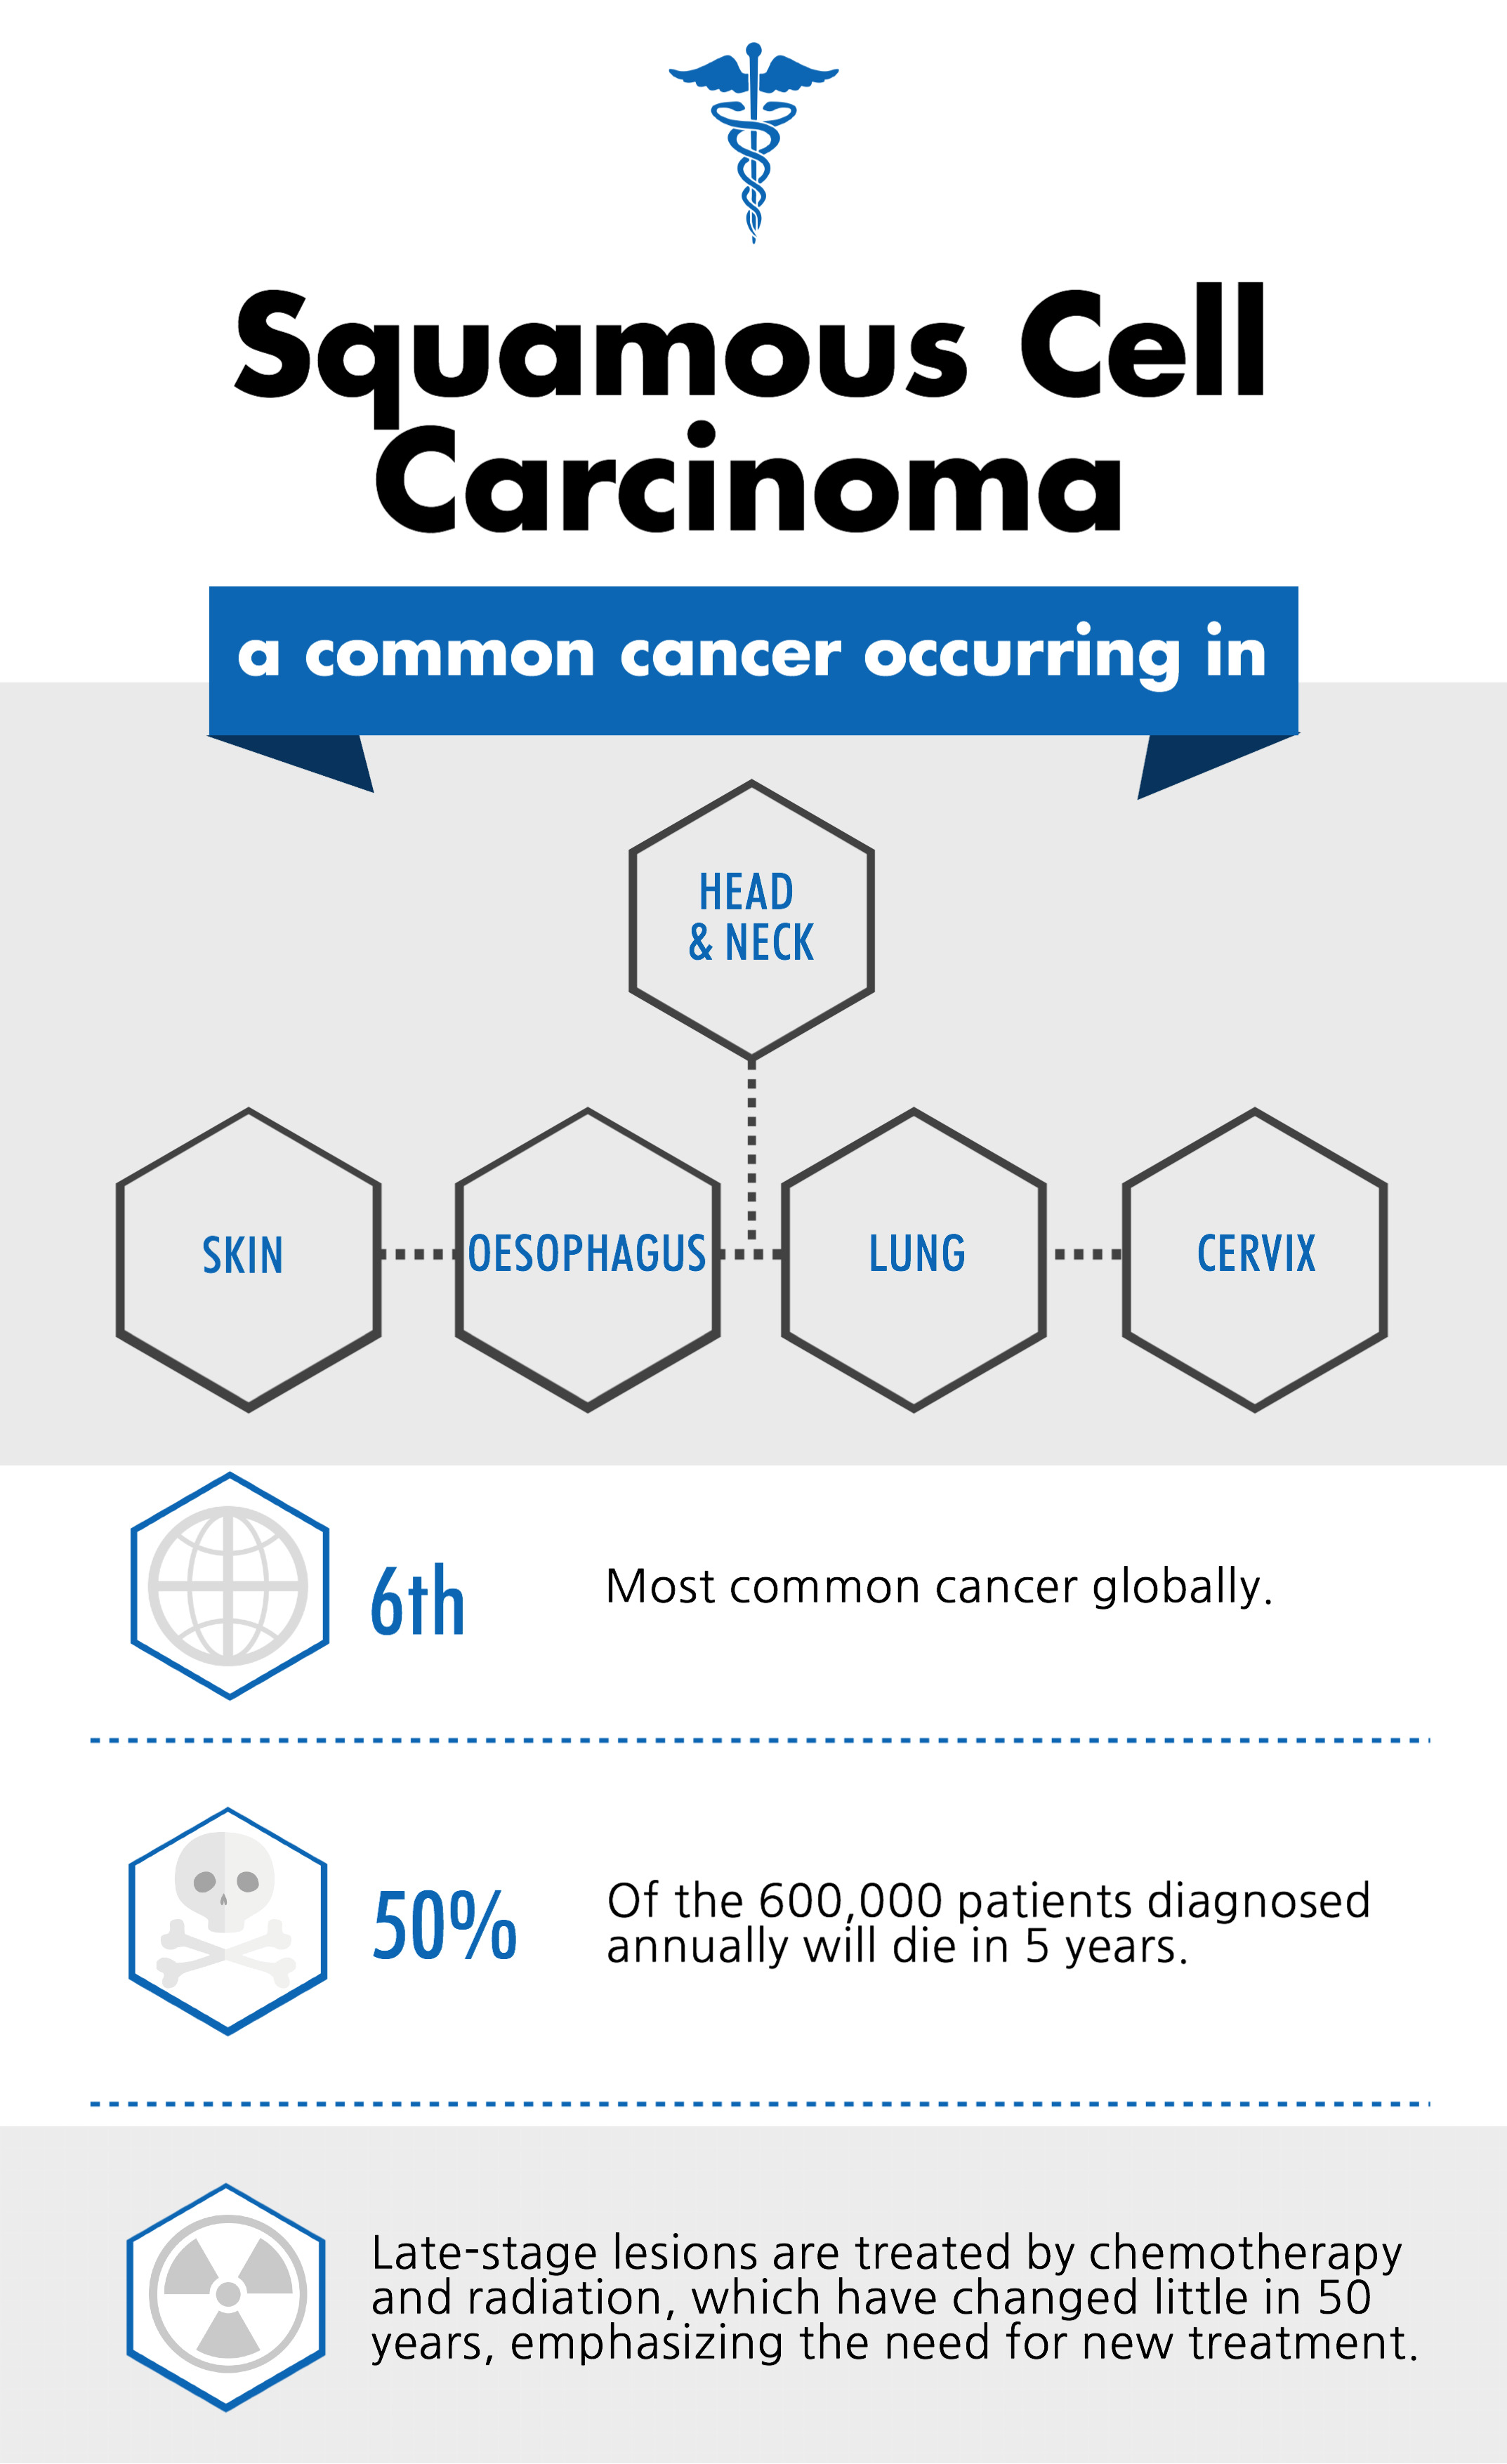 An infographic about squamos cell carcinoma.